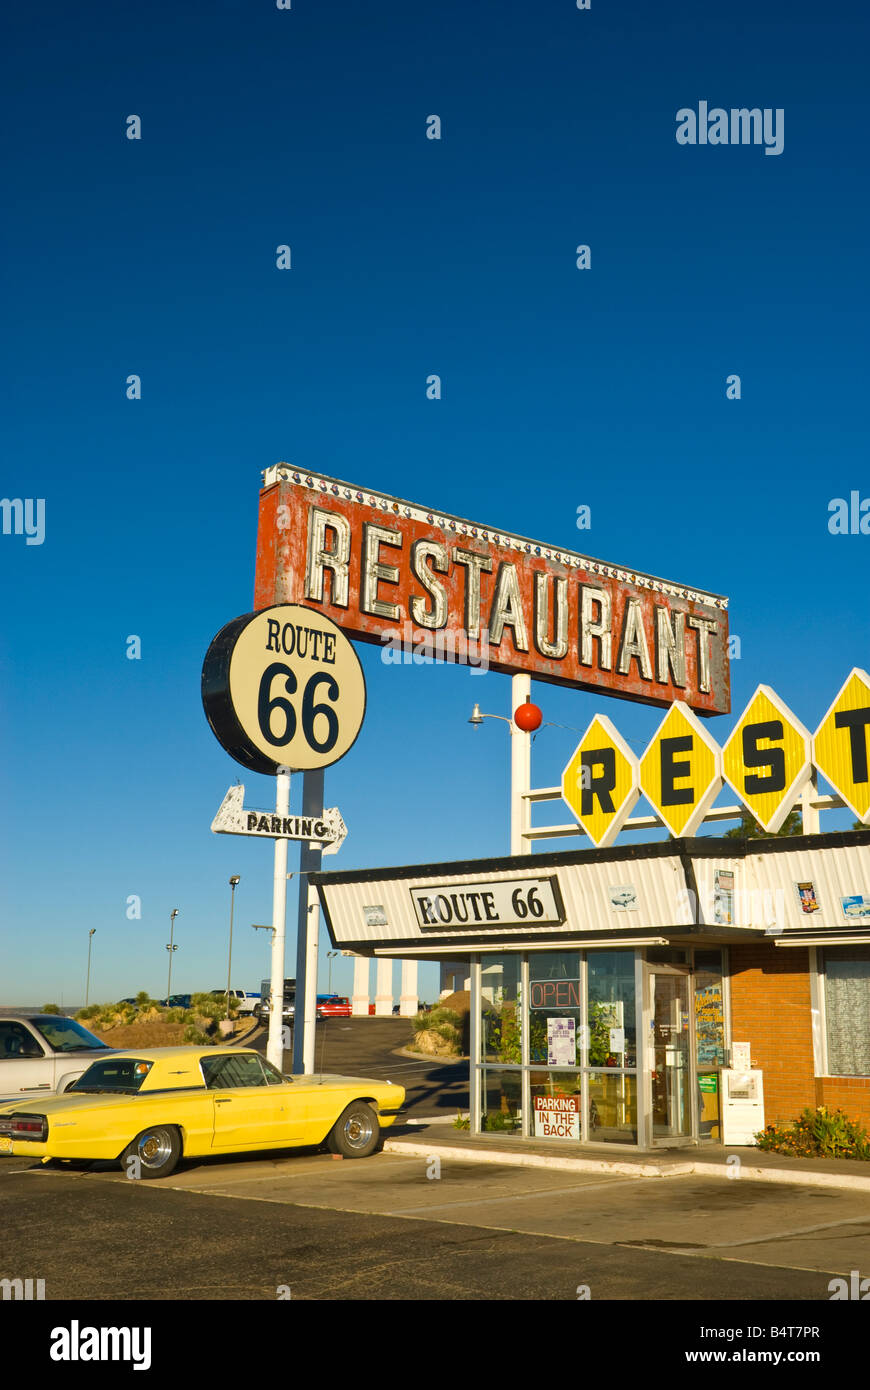 Signs At Route 66 Diner Stockfotos & Signs At Route 66 Diner Bilder ...